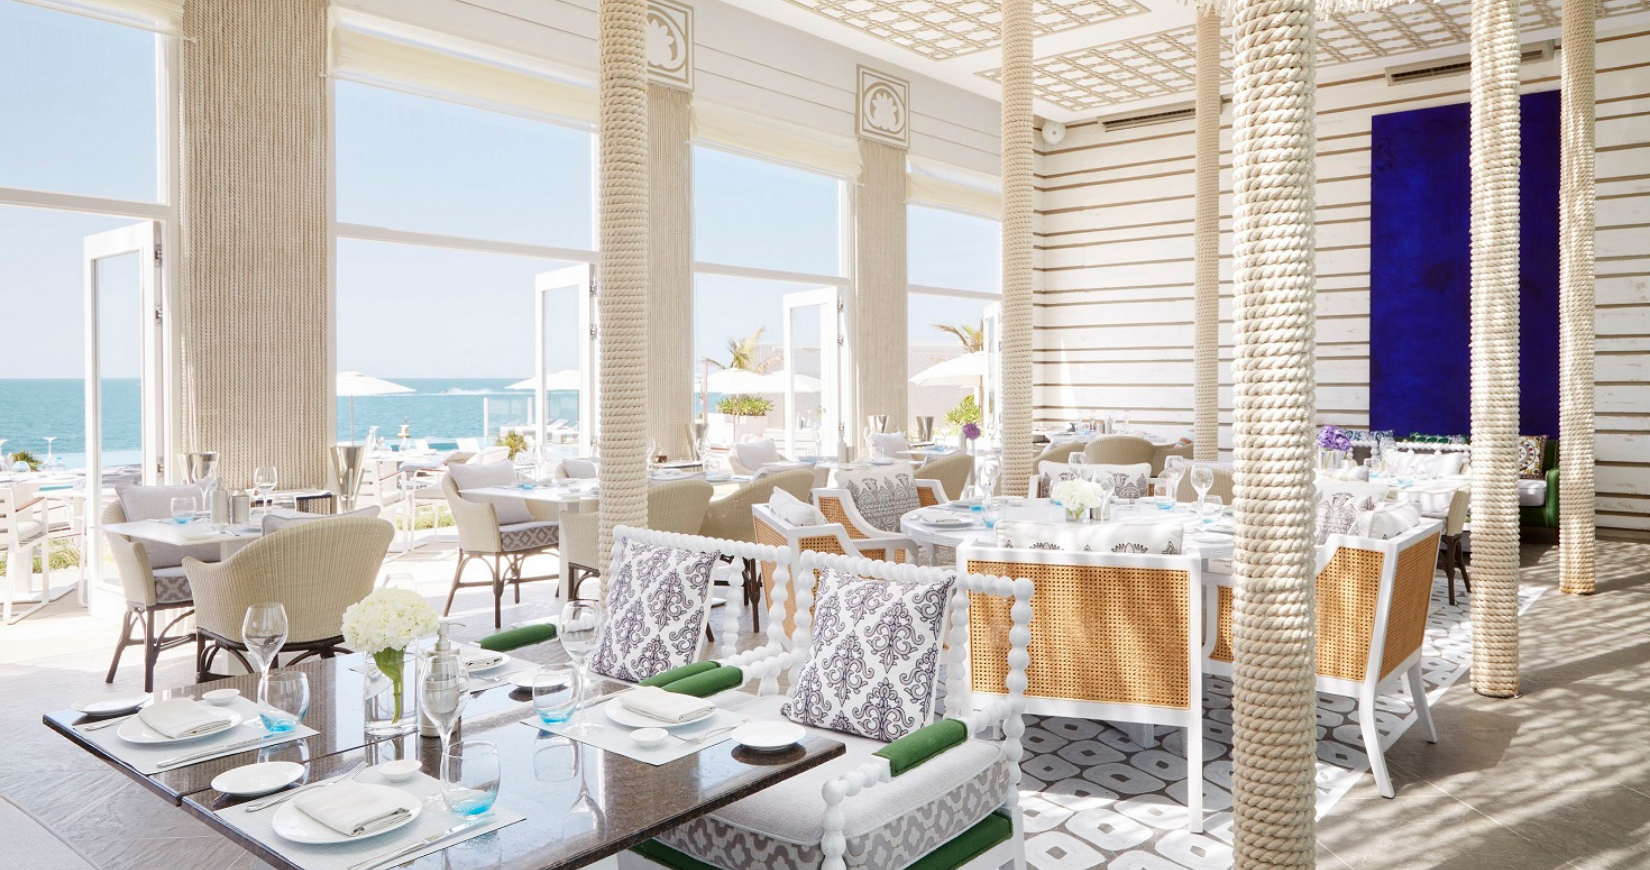 The new luxury restaurant with pool access at the Burj Al Arab